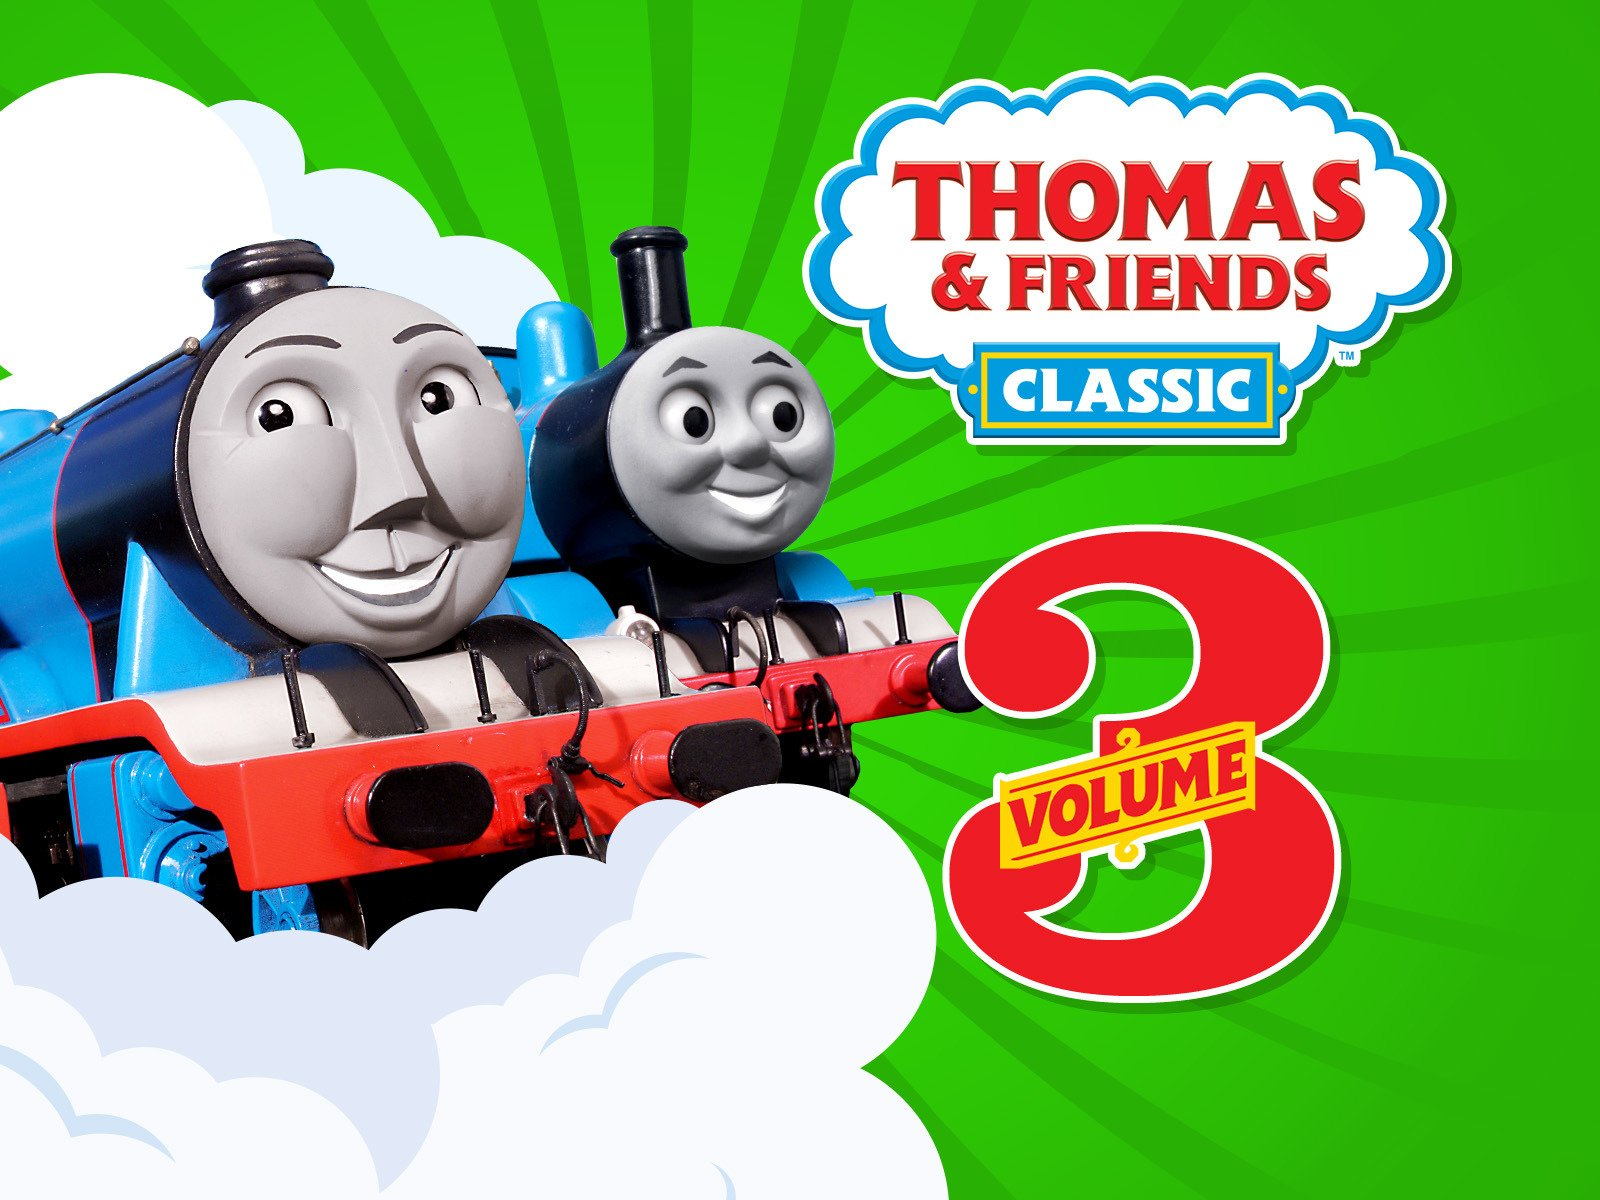 File:ThomasandFriendsClassicVolume3.jpg